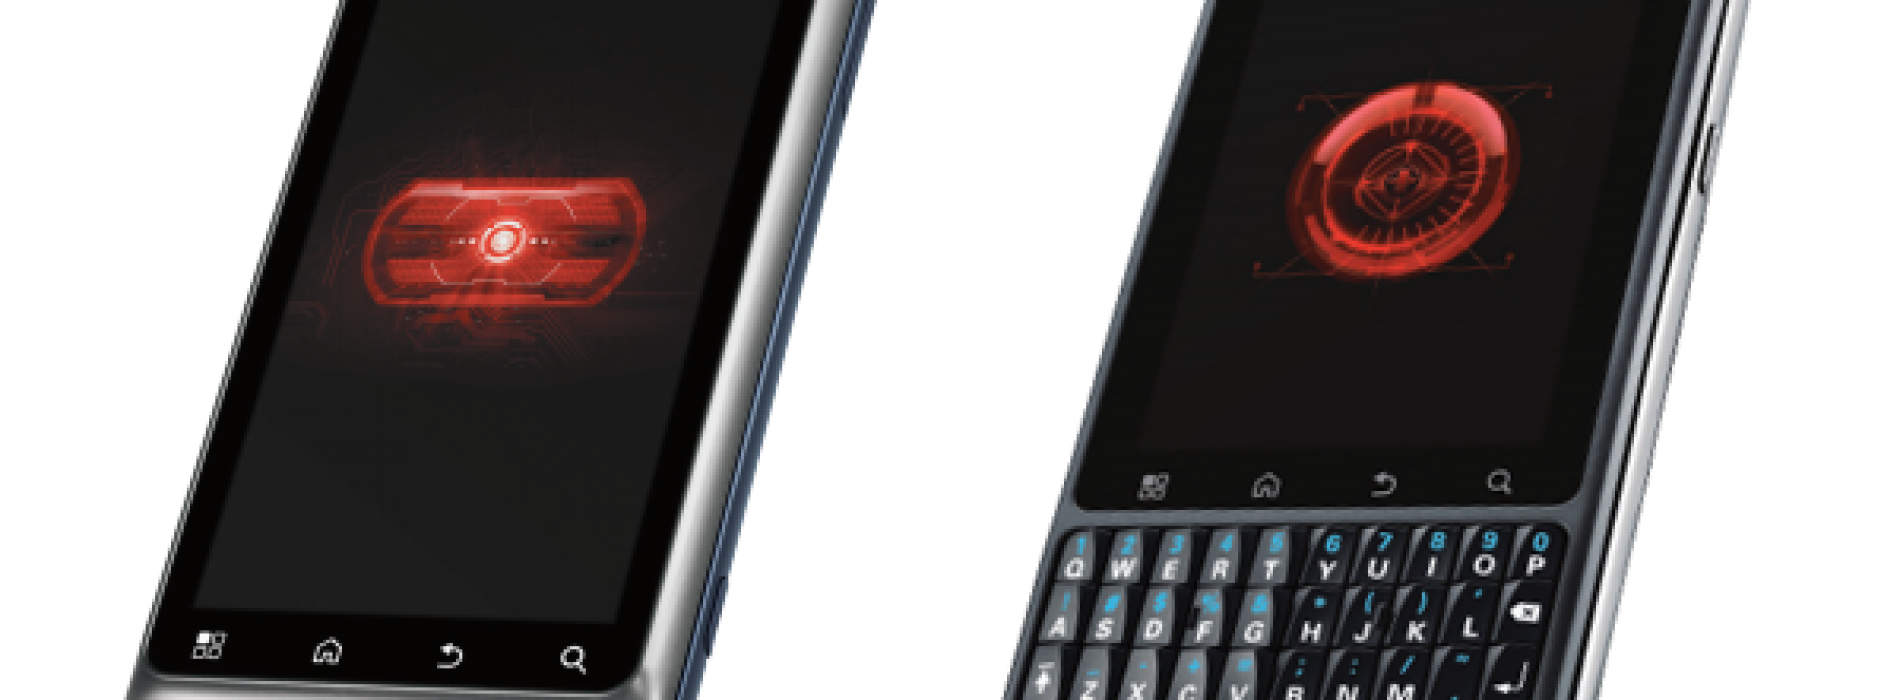 DROID Pro and DROID 2 Global getting Gingerbread updates